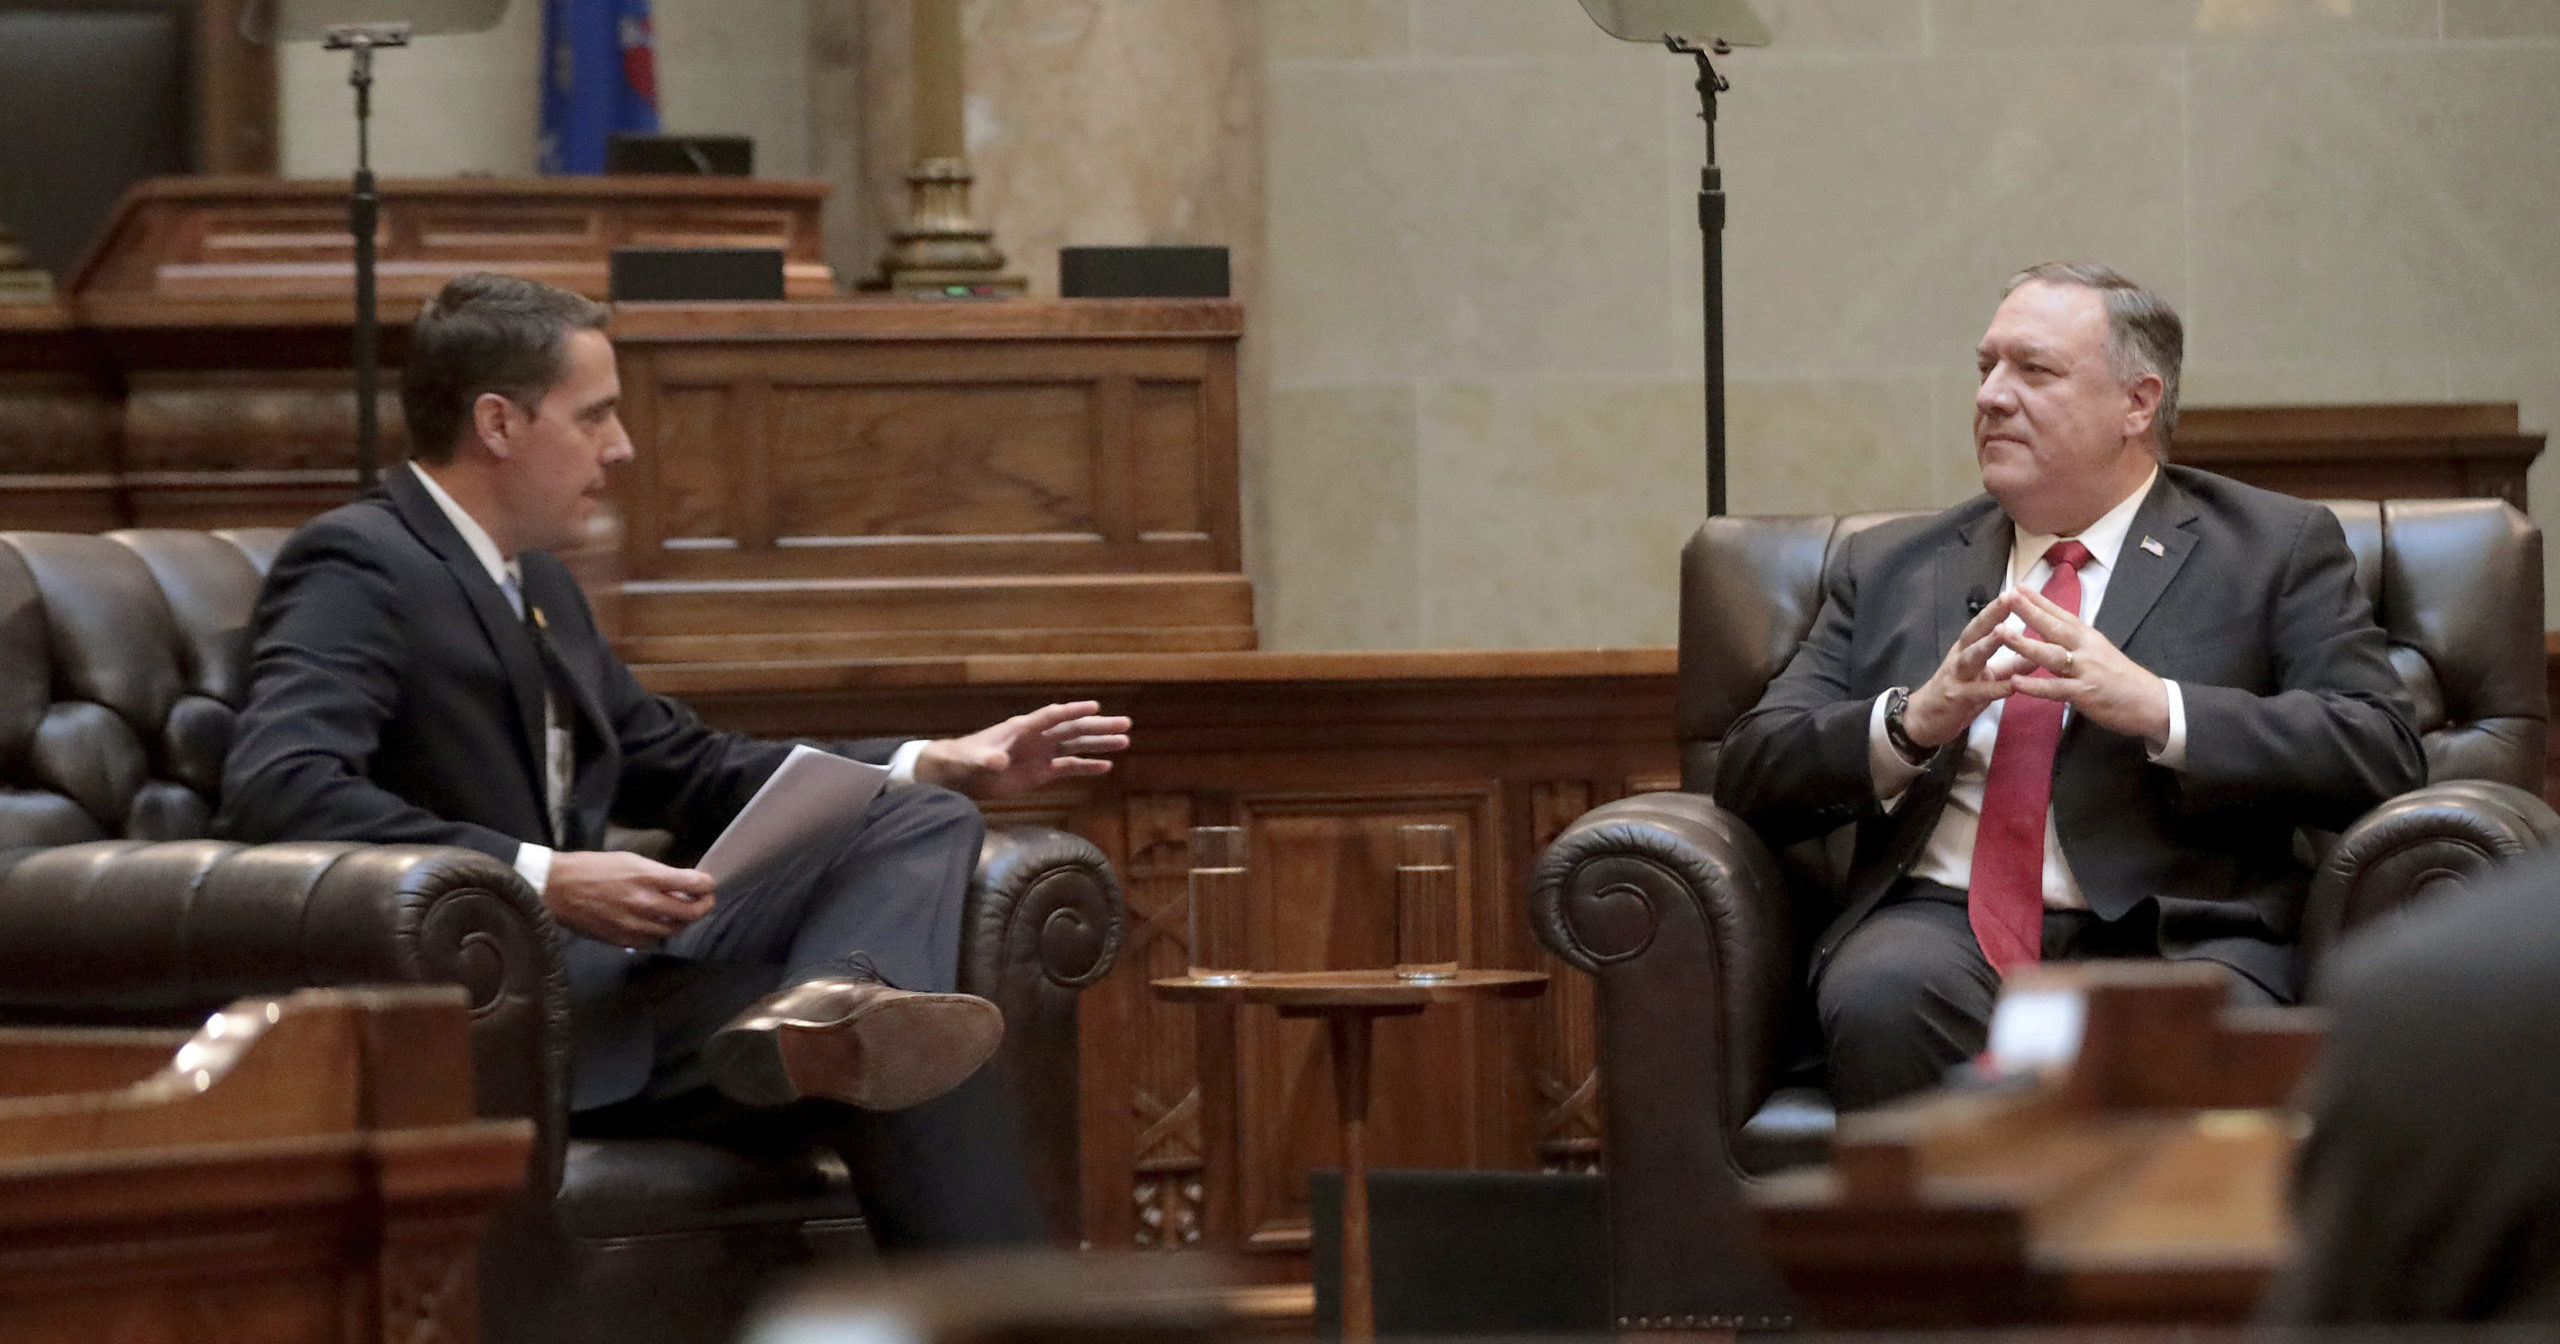 Secretary of State Mike Pompeo listens to a question from Wisconsin Senate President Roger Roth in the Senate chamber of the Wisconsin State Capitol in Madison, Wisconsin, on Sept. 23, 2020.